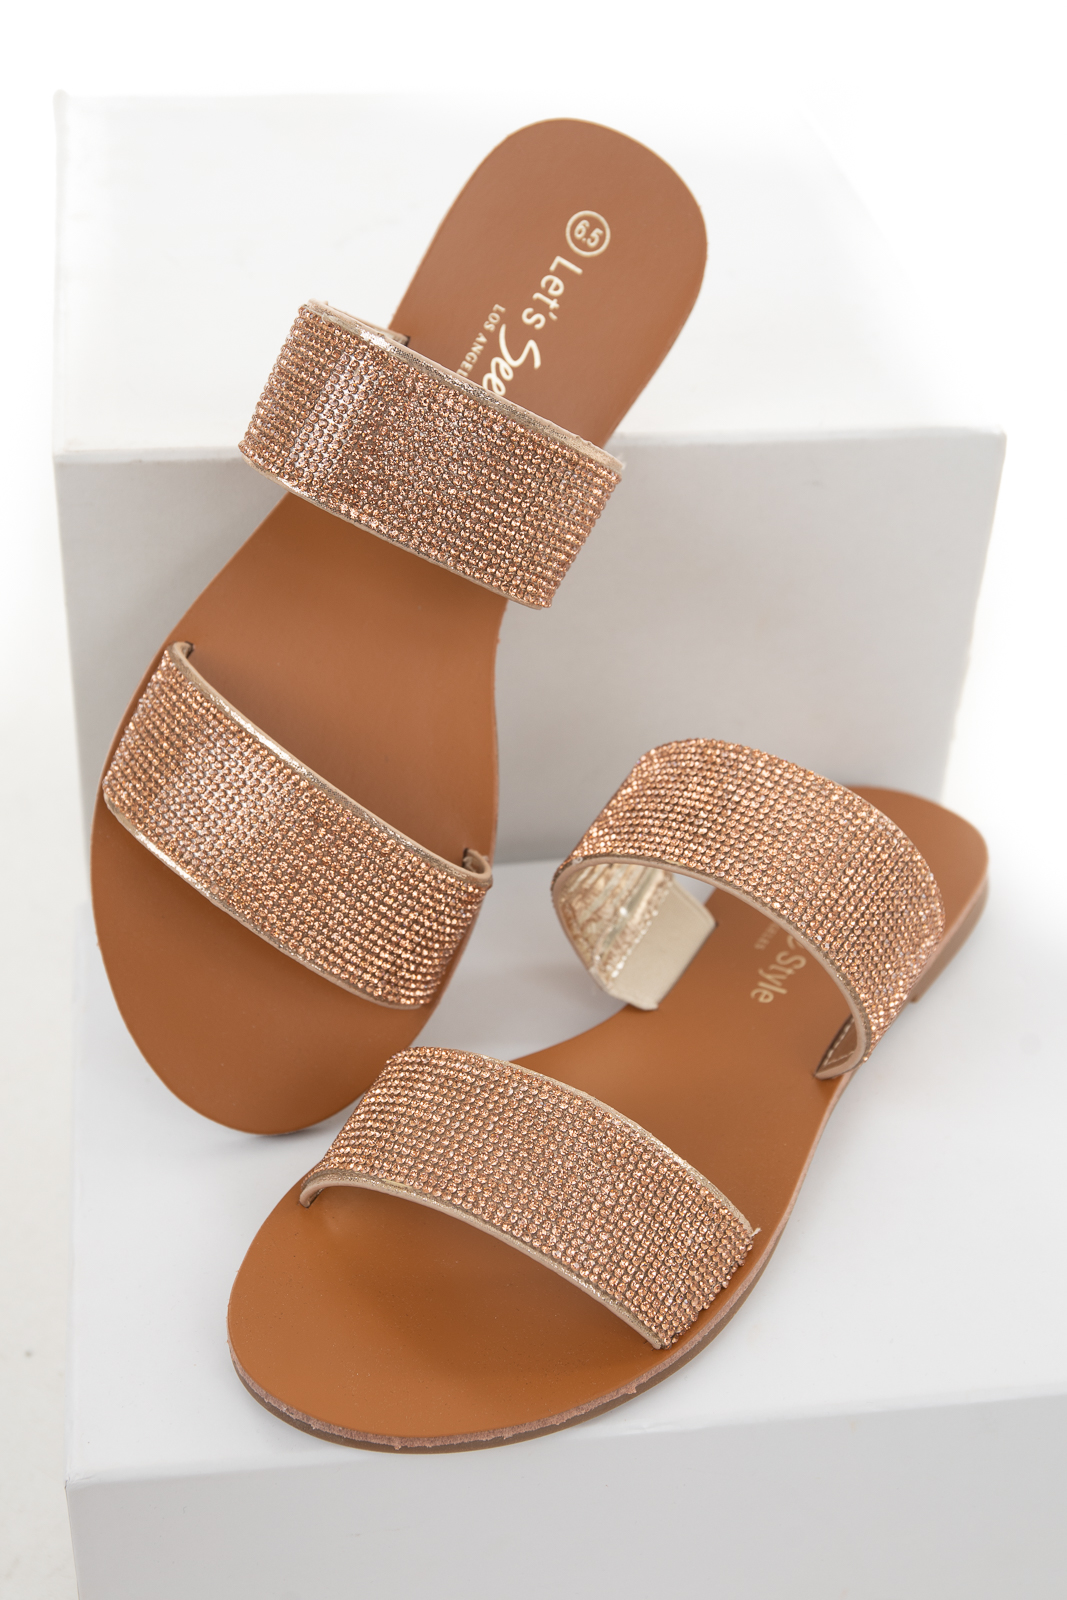 Cognac Open Toe Sandals with Rose Gold Rhinestone Straps